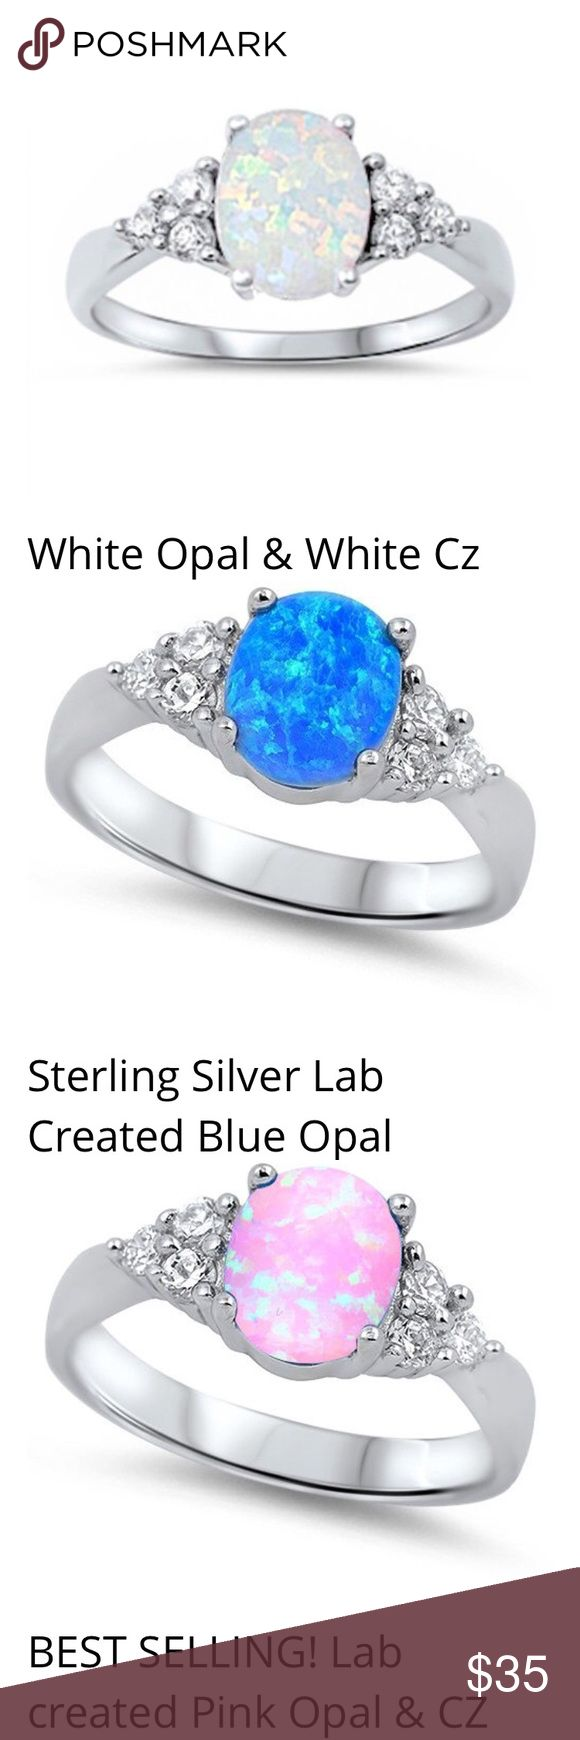 Sterling silver 925 australian opal ring Sterling silver 925 oval australian fire opal ring 6x10 center stone 3 mm cz on both side 2mm band ring rhodium for anti turnish .available in white opal blue opal and ligth blue opal pink opal . Jewelry Rings